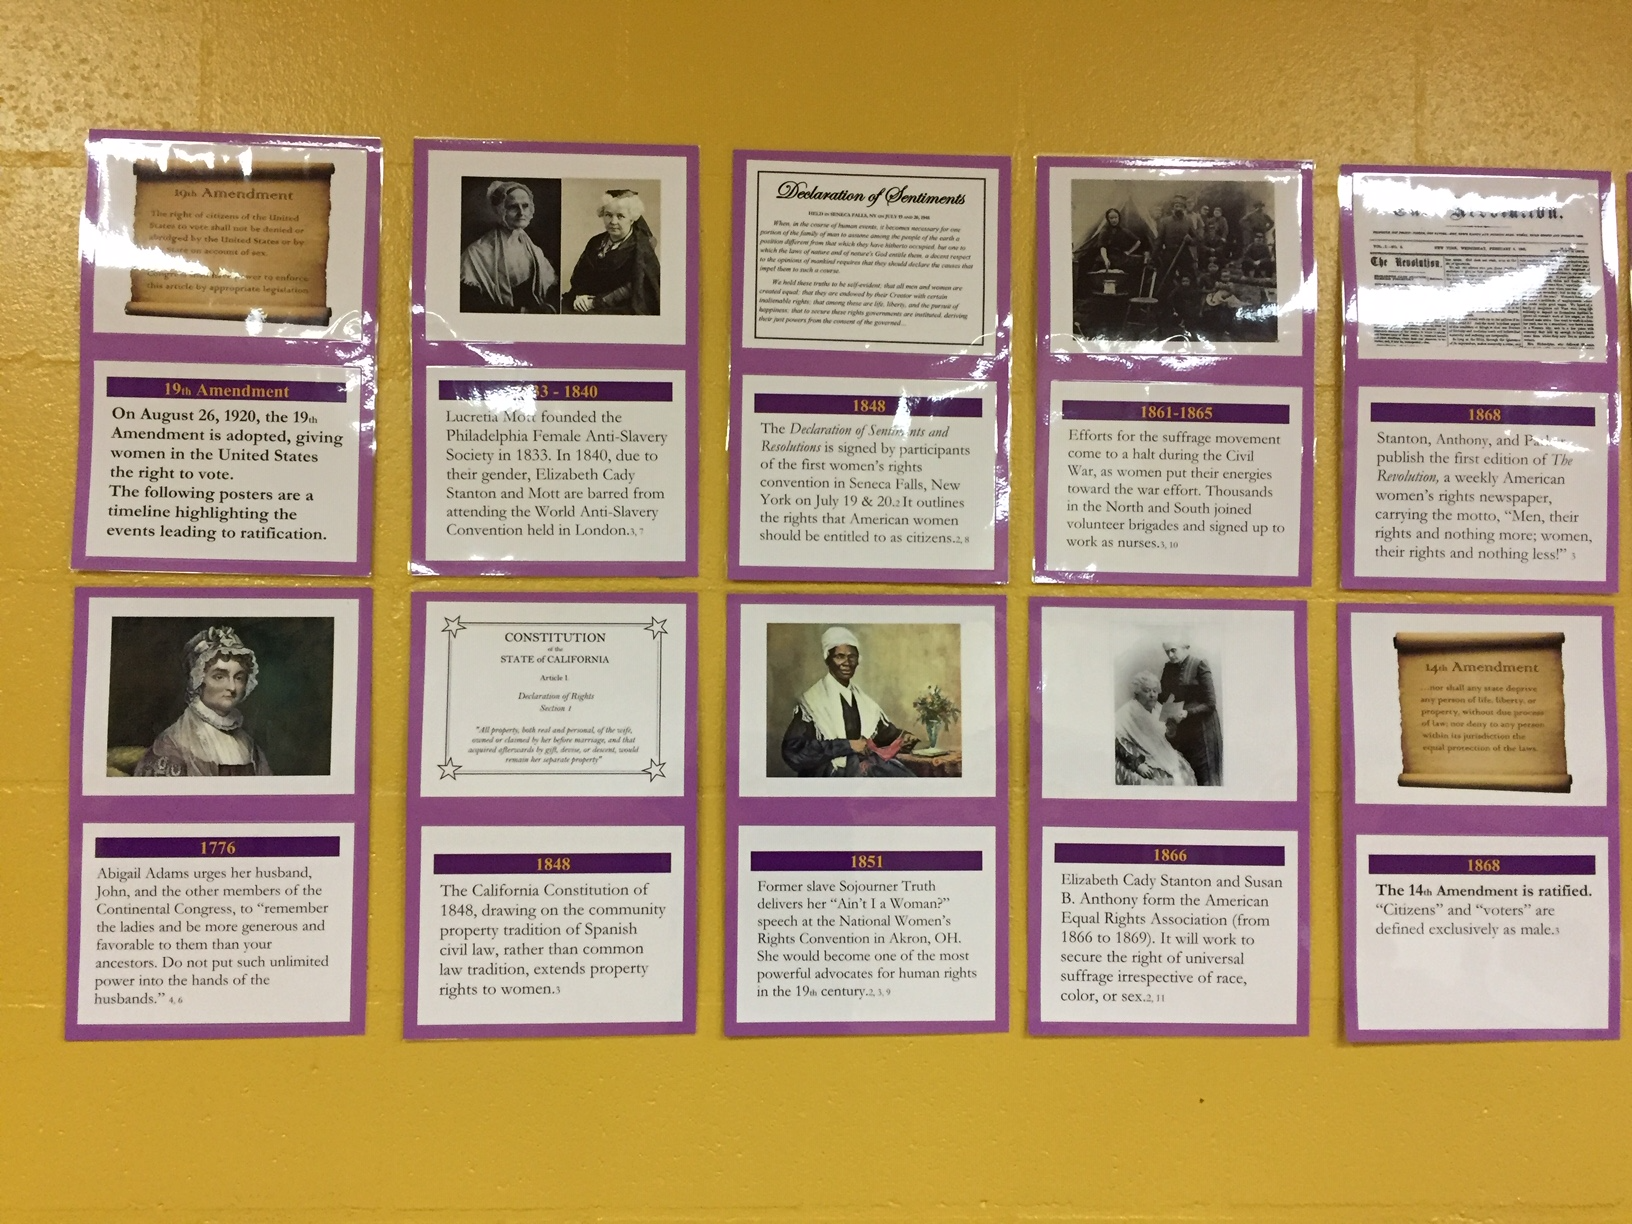 Another section of the Suffragist timeline.